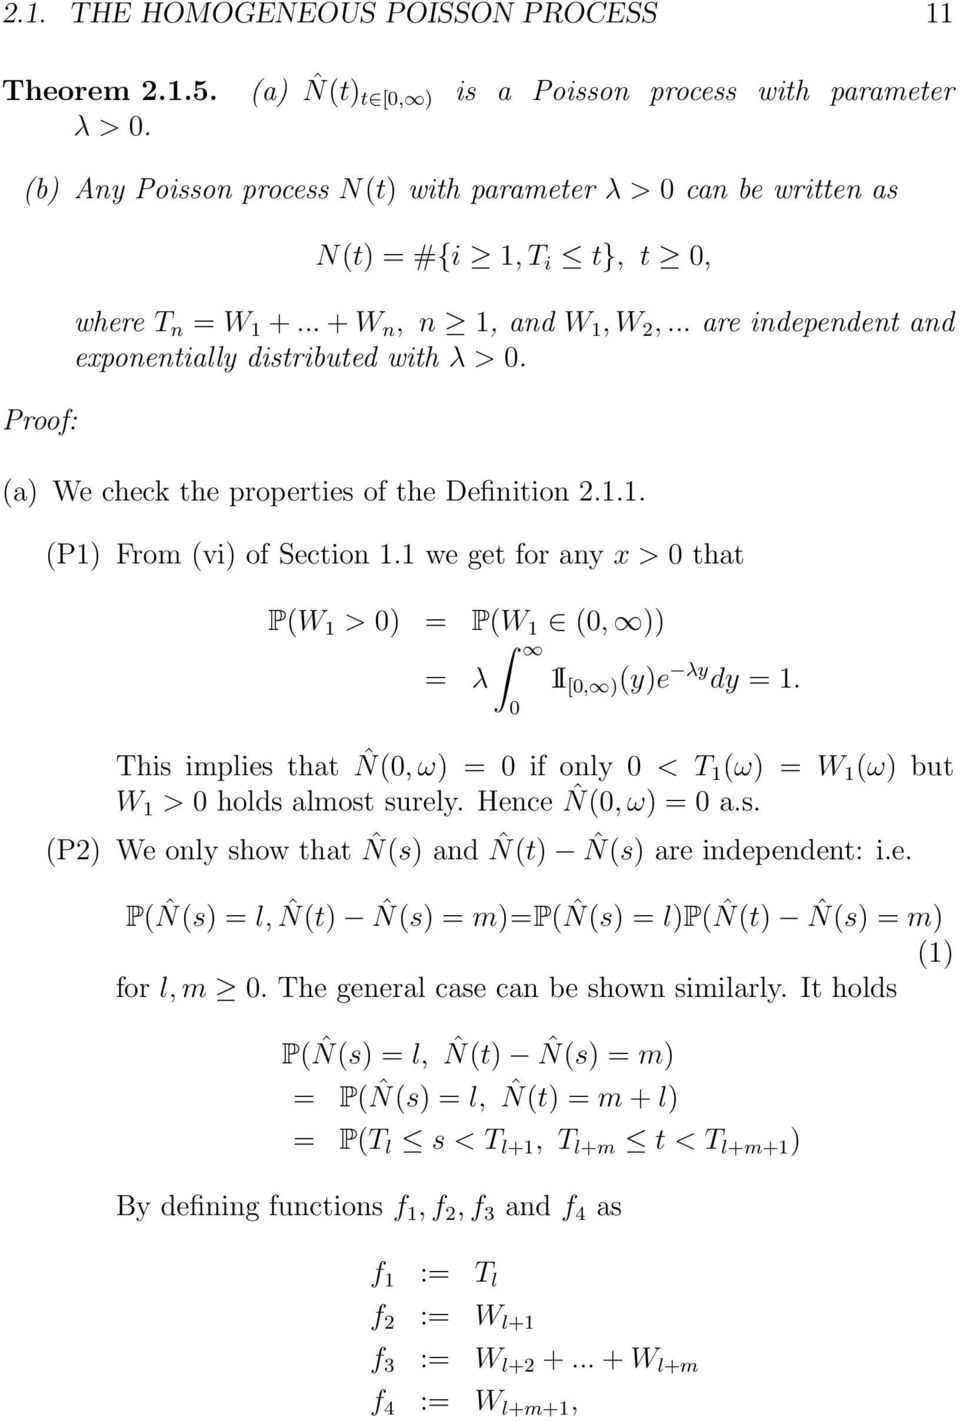 (a) We check the properties of the Definition 2.1.1. (P1) From (vi) of Section 1.1 we get for any x > that P(W 1 > ) P(W 1 (, )) λ 1I [, ) (y)e λy dy 1.